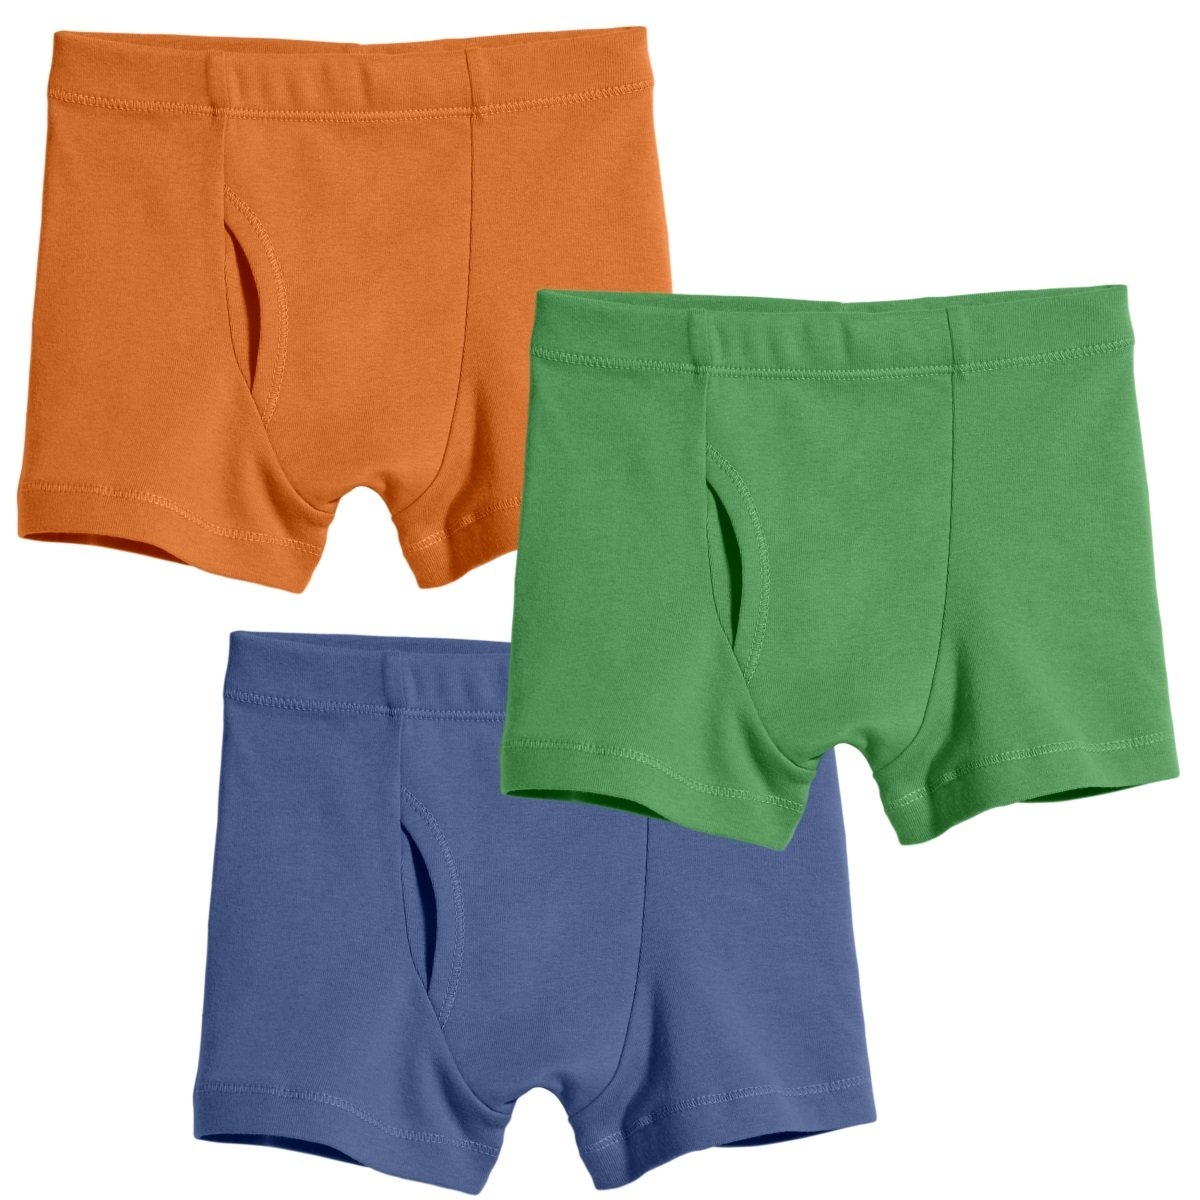 City Threads Big Boys Organic Cotton Boxer Brief for Sensitive Skin and SPD Sensory Friendly Clothing, 3Pack Boy, 10